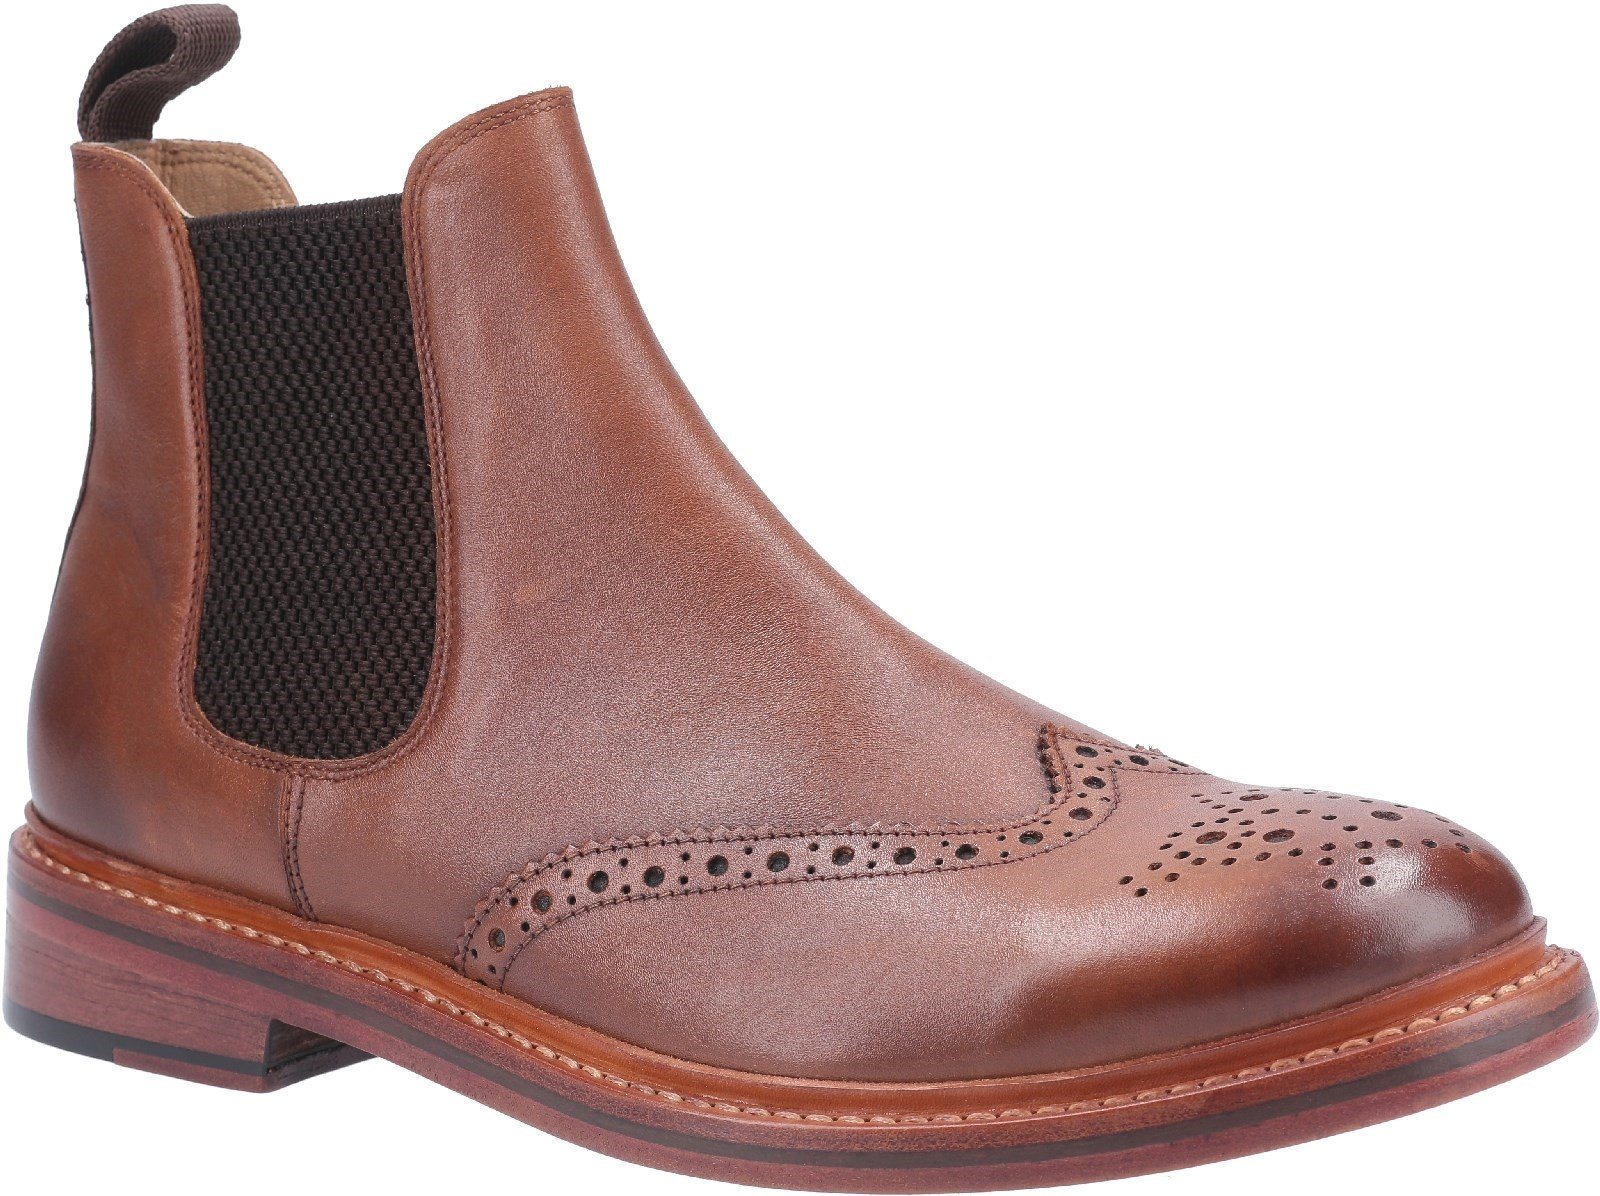 Cotswold Men's Siddington Leather Goodyear Welt Boot Various Colours 29258 - Brown 7